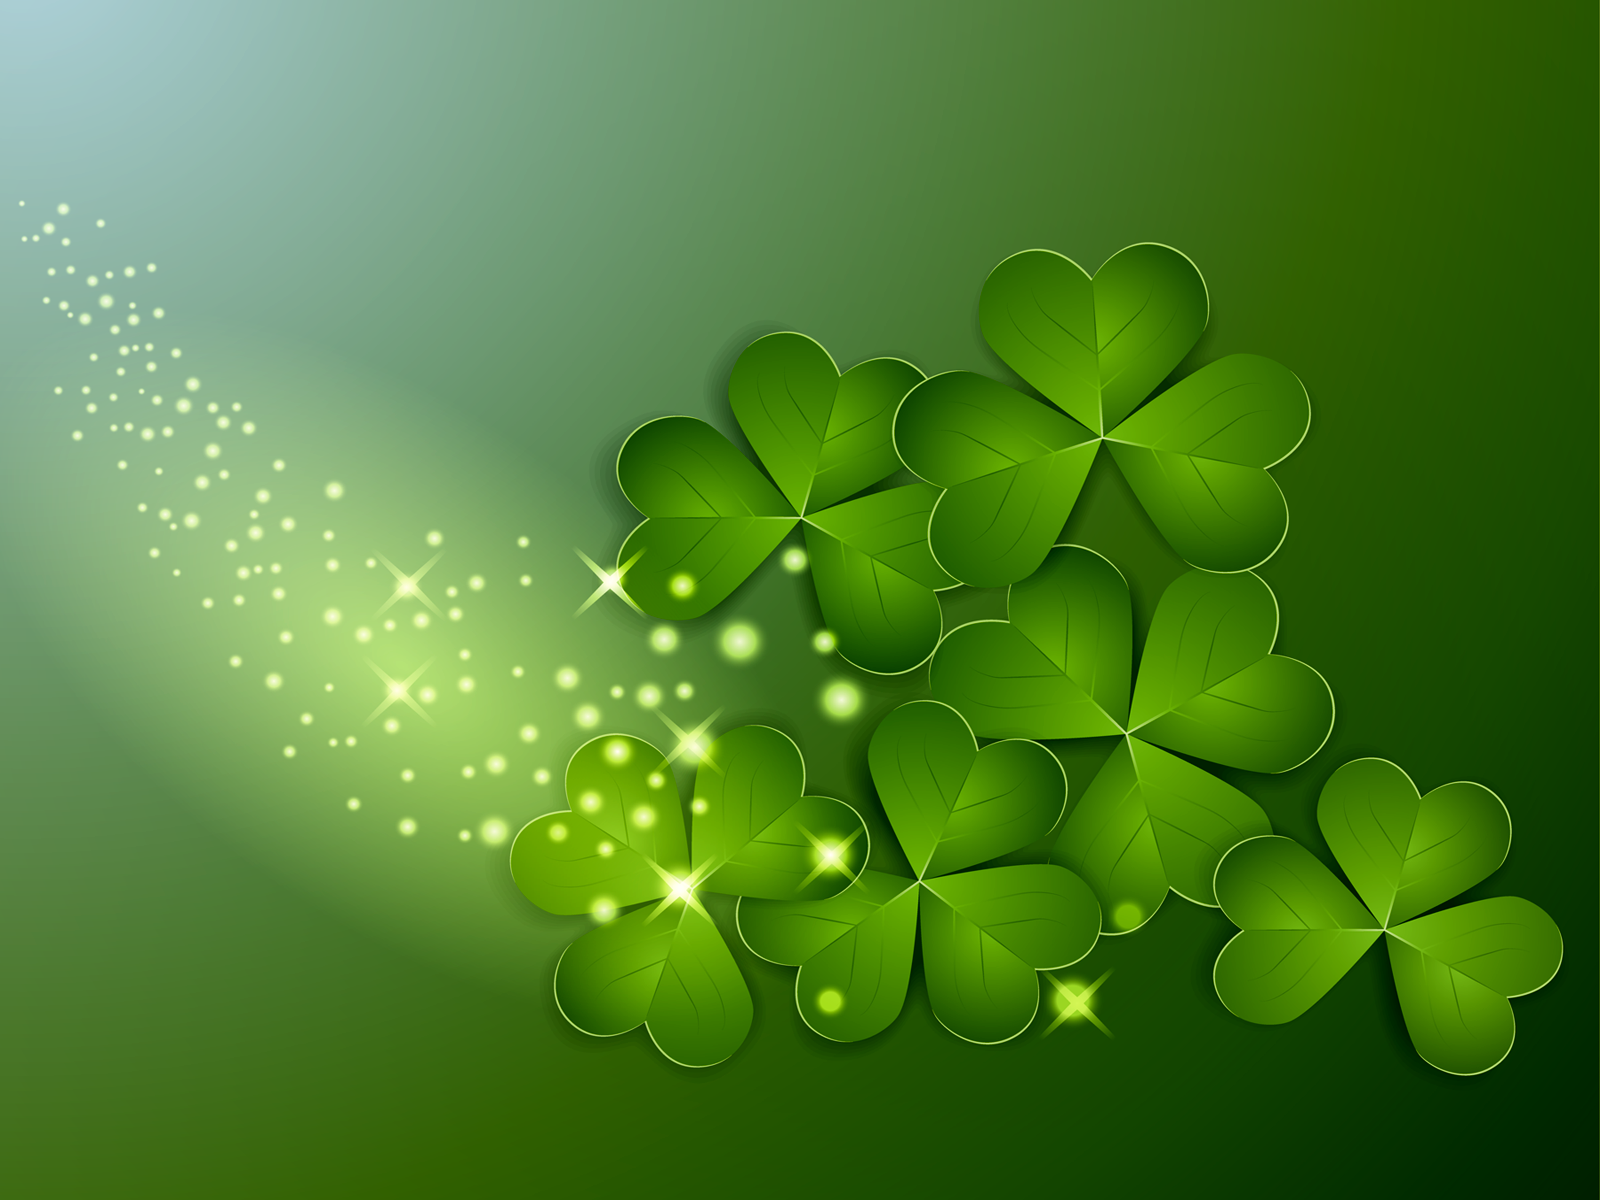 Wallpapers For gt St Patricks Day Wallpaper 1600x1200